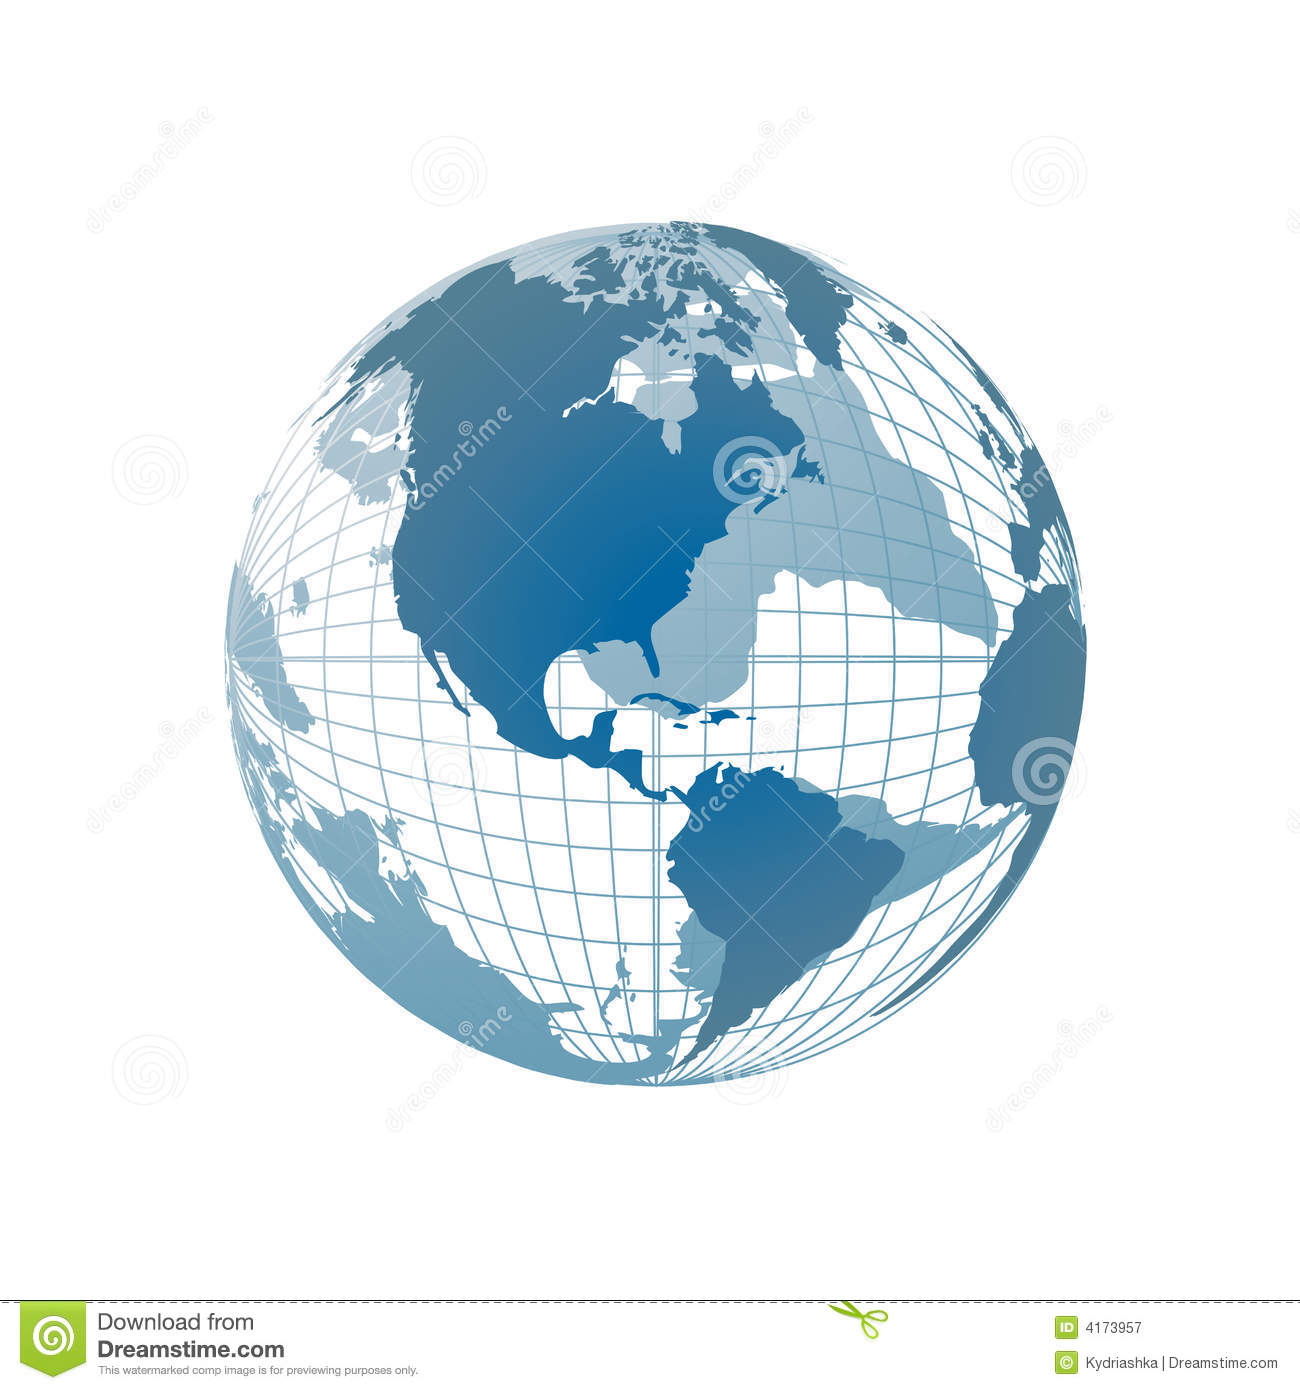 World map 3d globe stock vector illustration of continents 4173957 download world map 3d globe stock vector illustration of continents 4173957 gumiabroncs Gallery